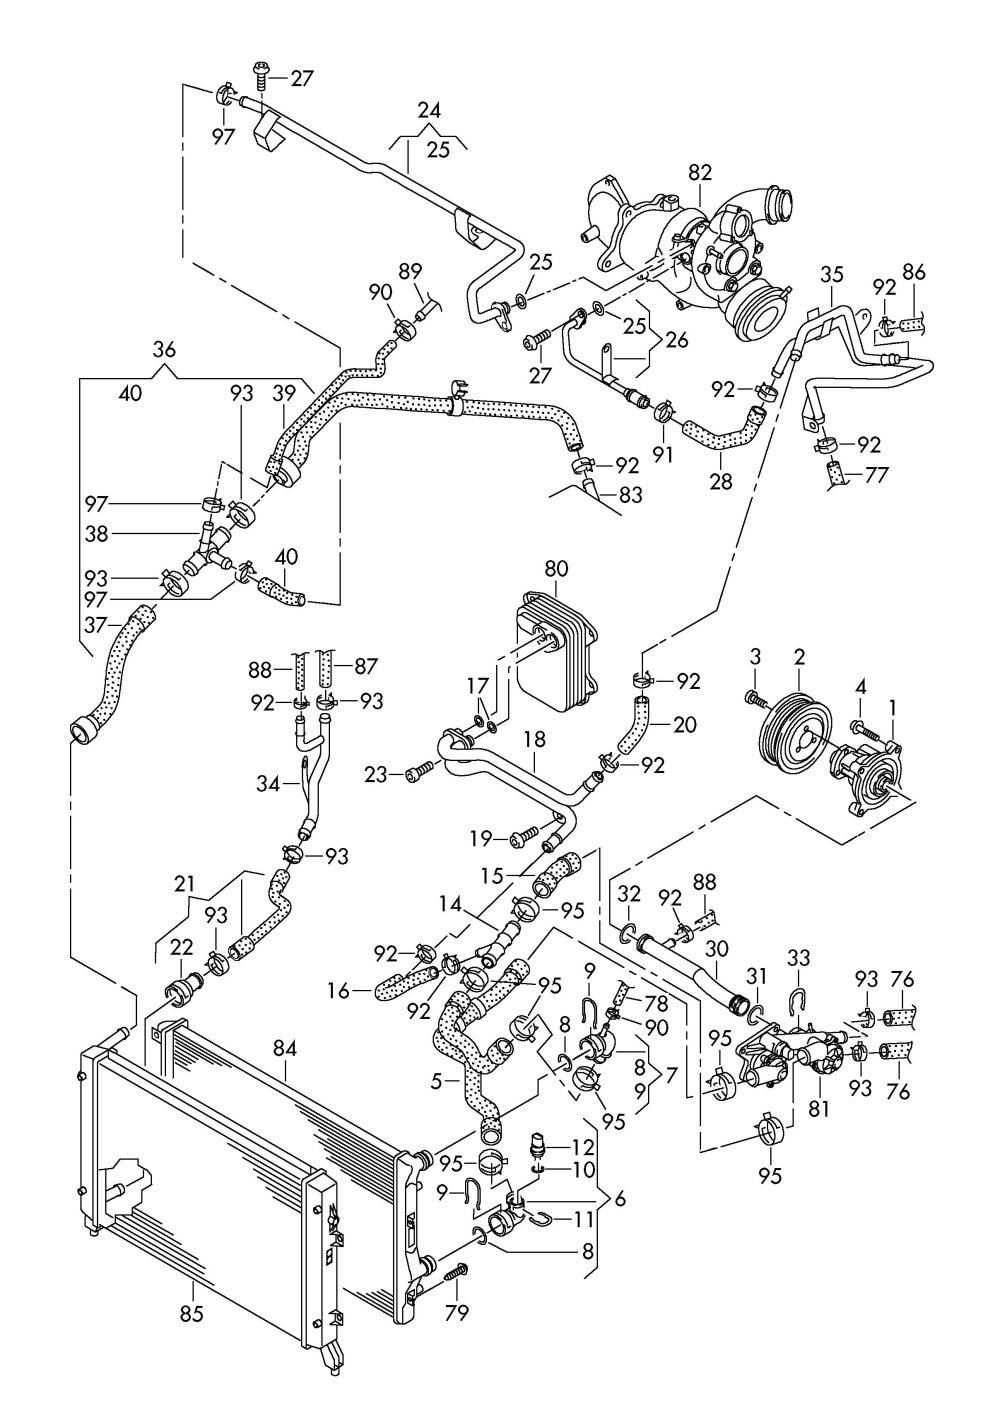 medium resolution of 2002 volkswagen pat engine diagram u2022 wiring diagram for free 4 cylinder engine diagram v6 engine